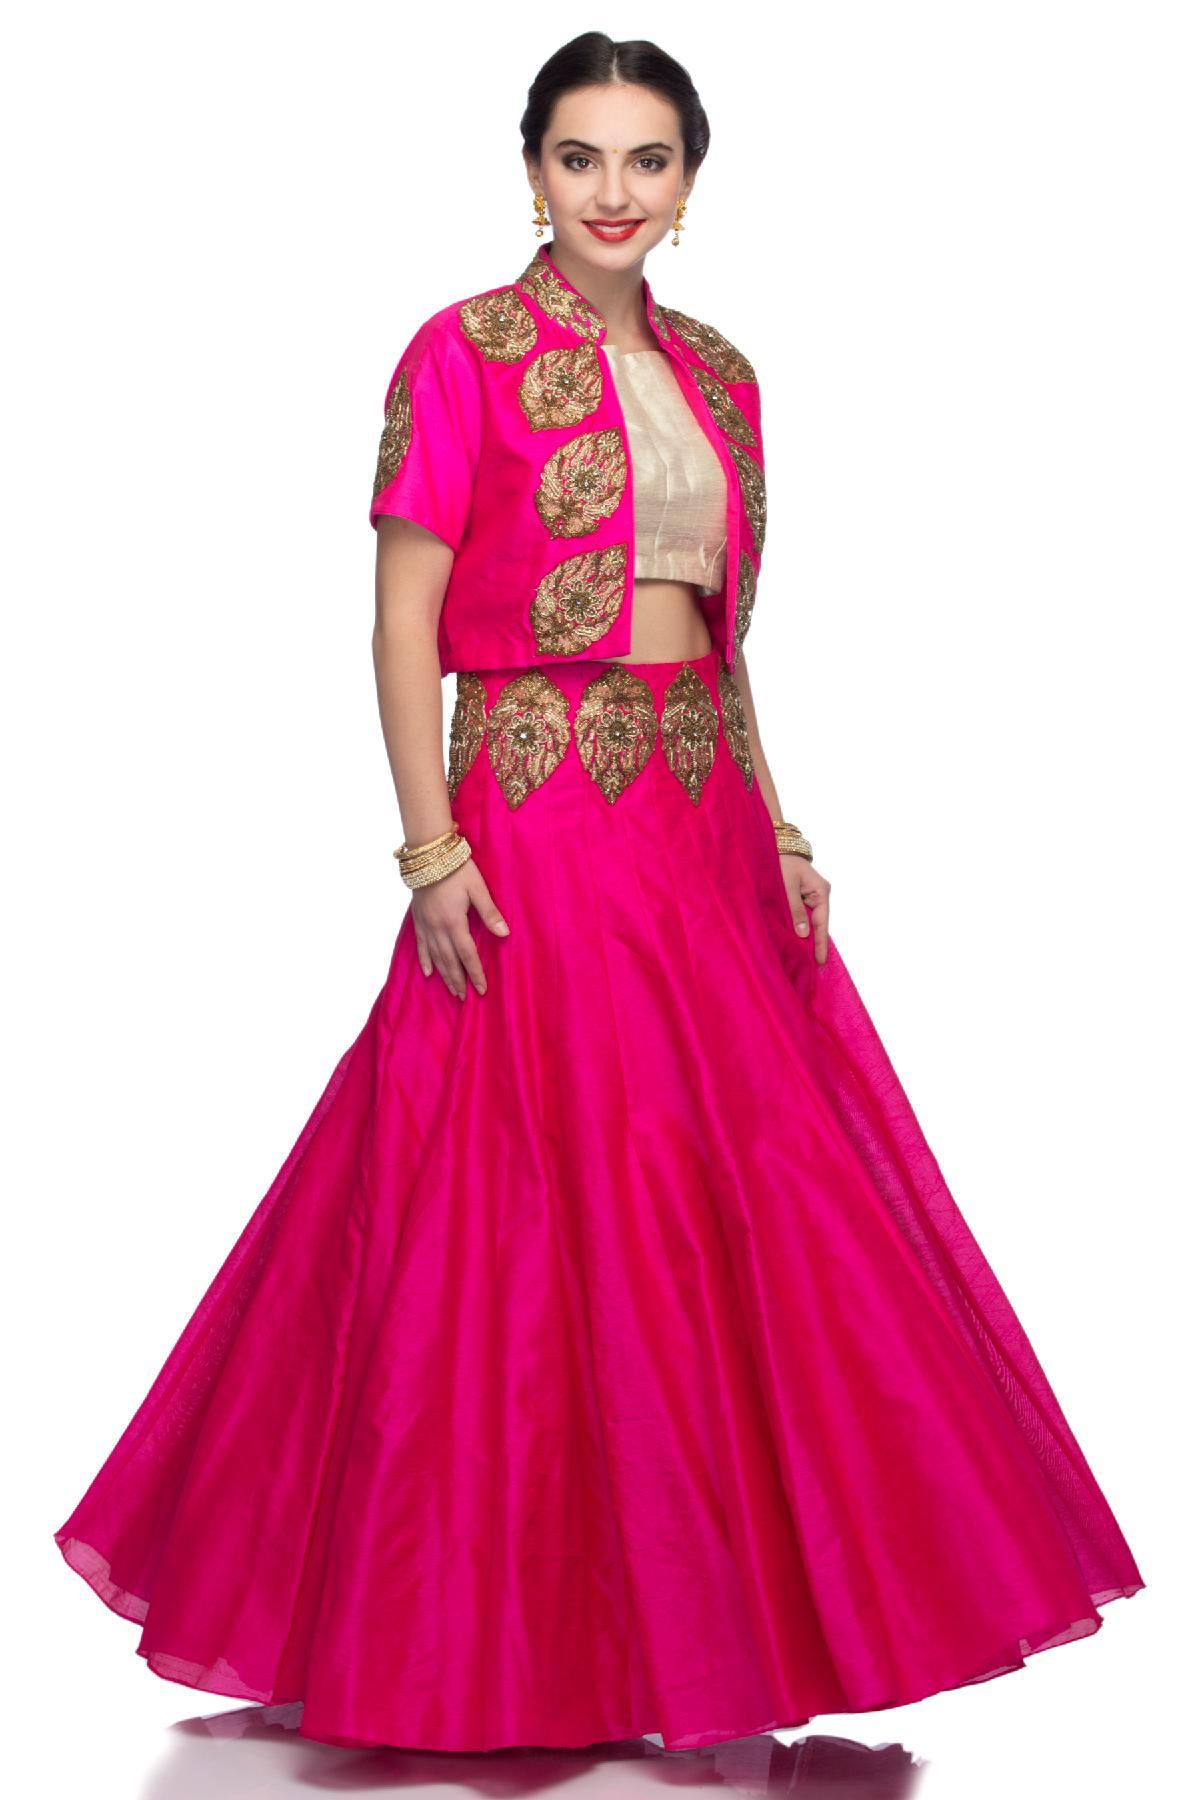 09c0692bd6f1 Fuchsia Fuchsia Skirt with Golden Crop Top and Fuchsia Embroidered ...